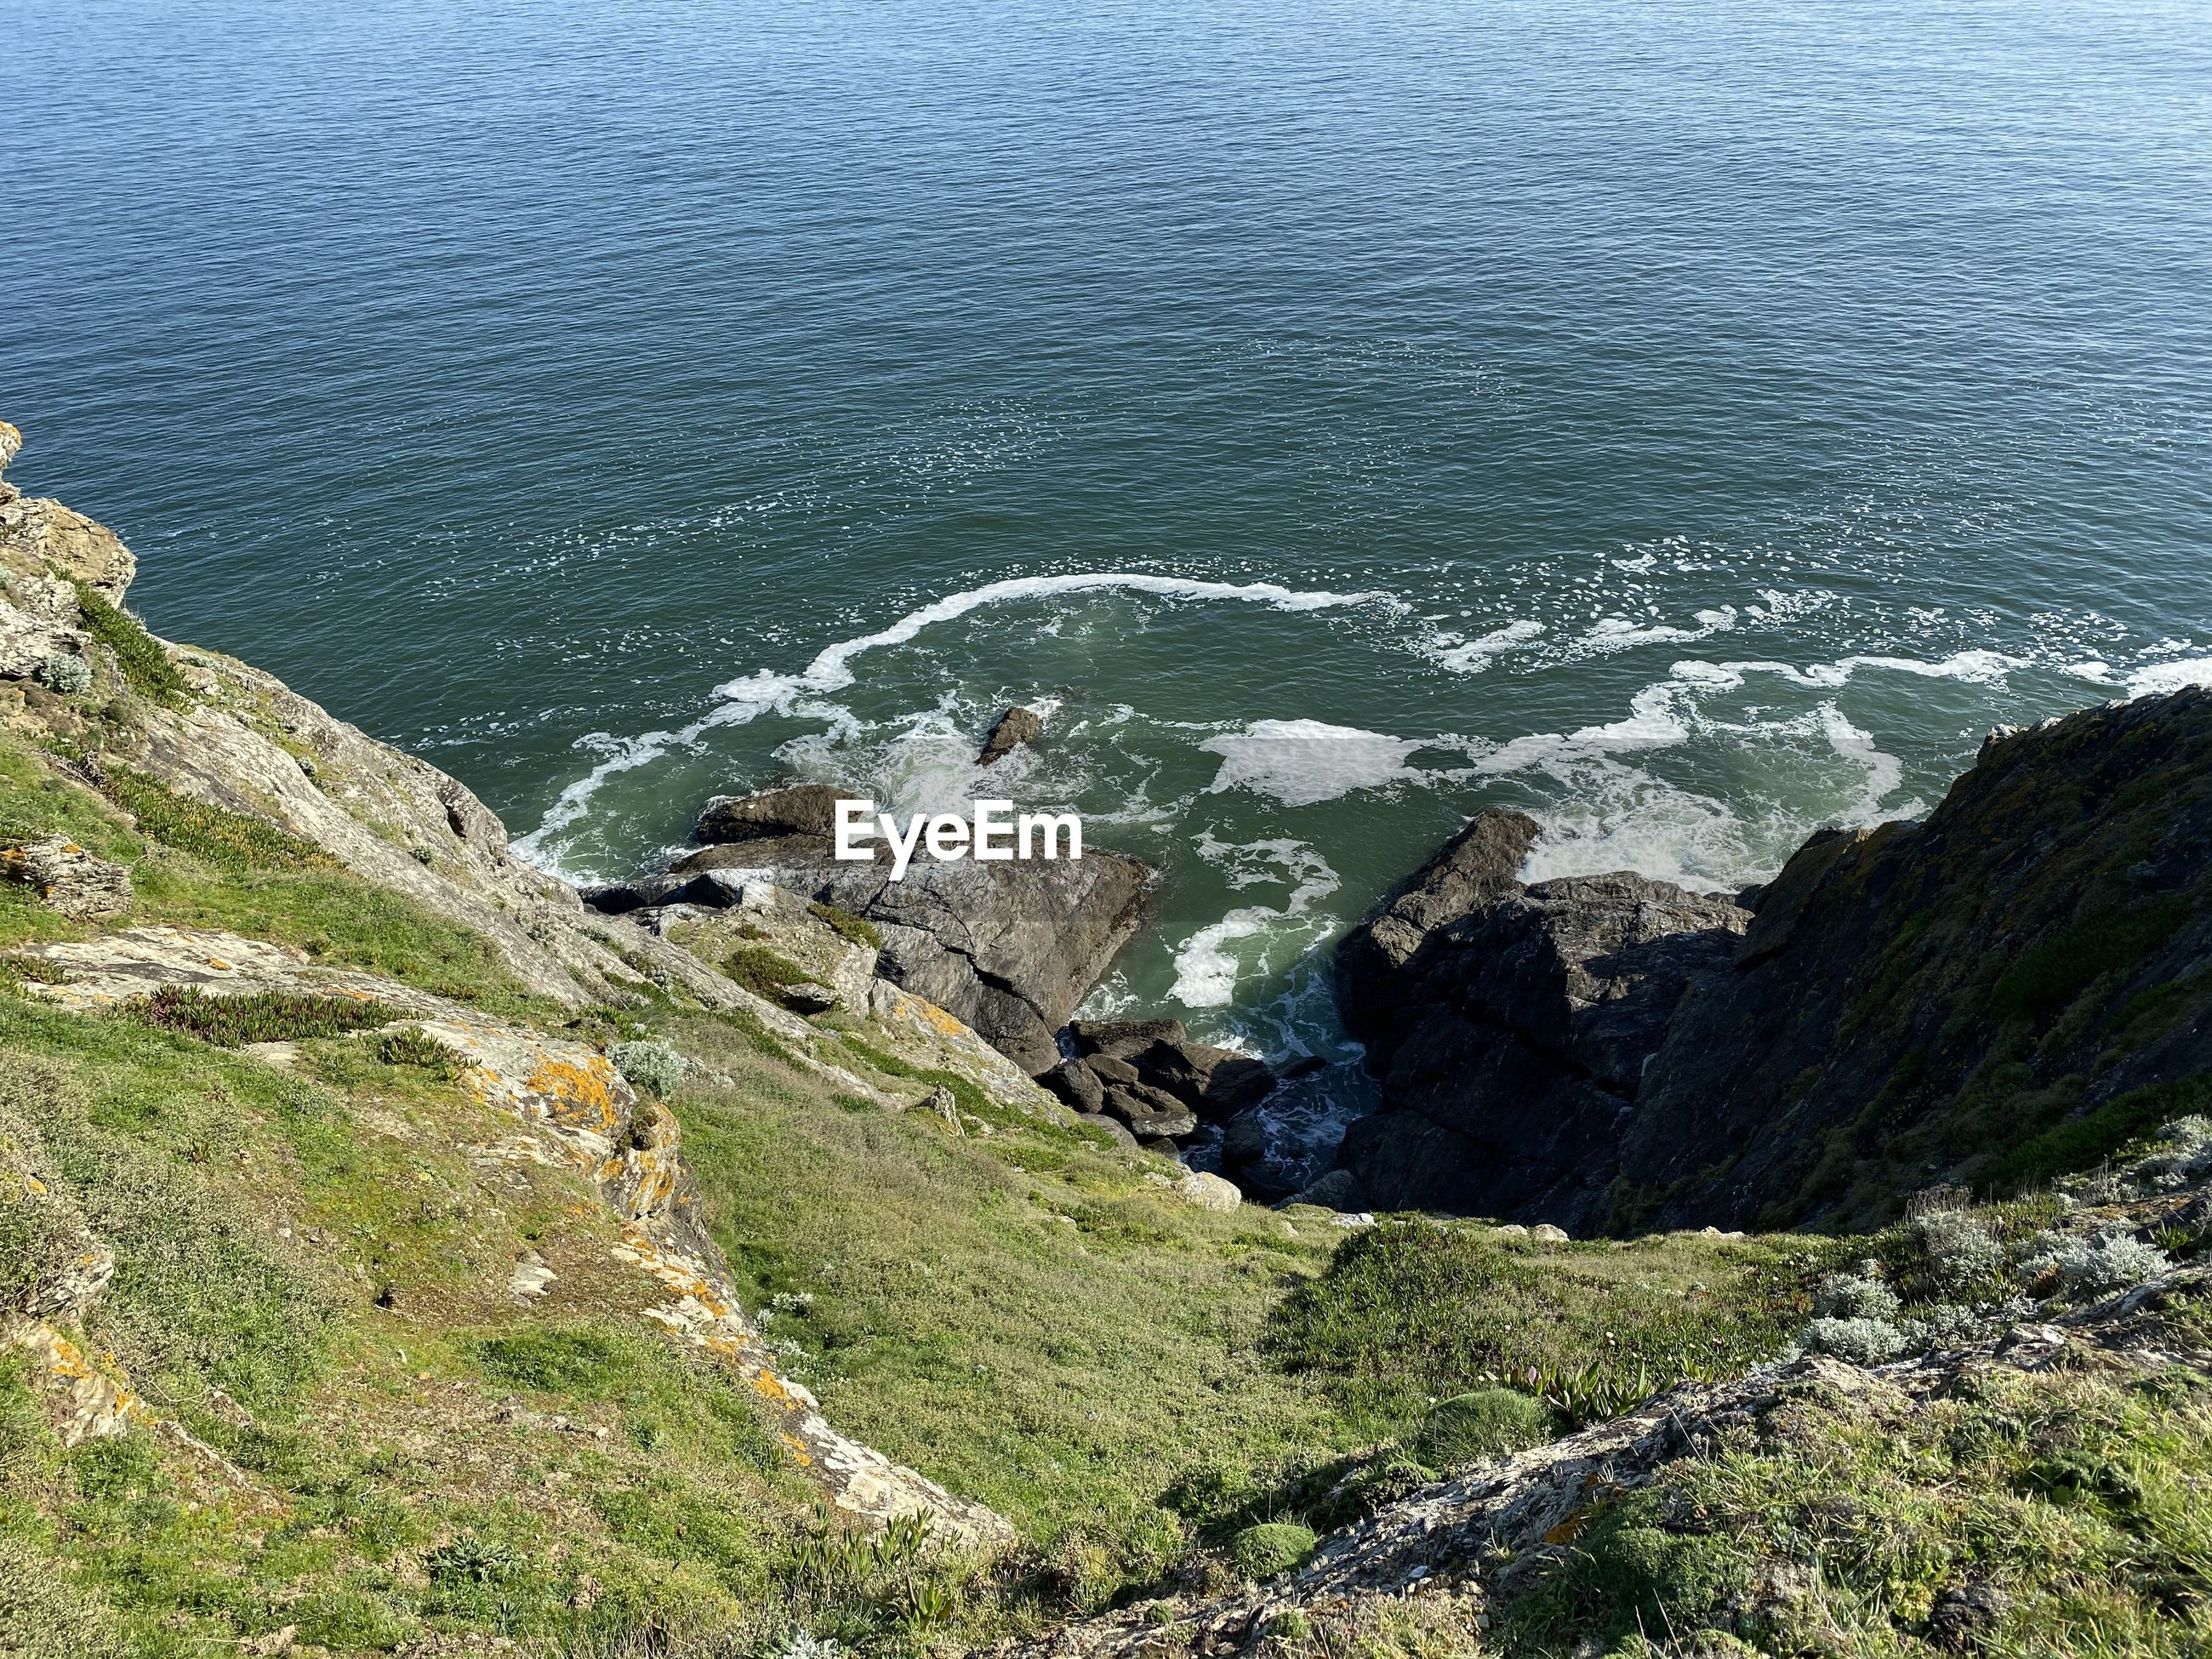 High angle view of rocks on sea shore